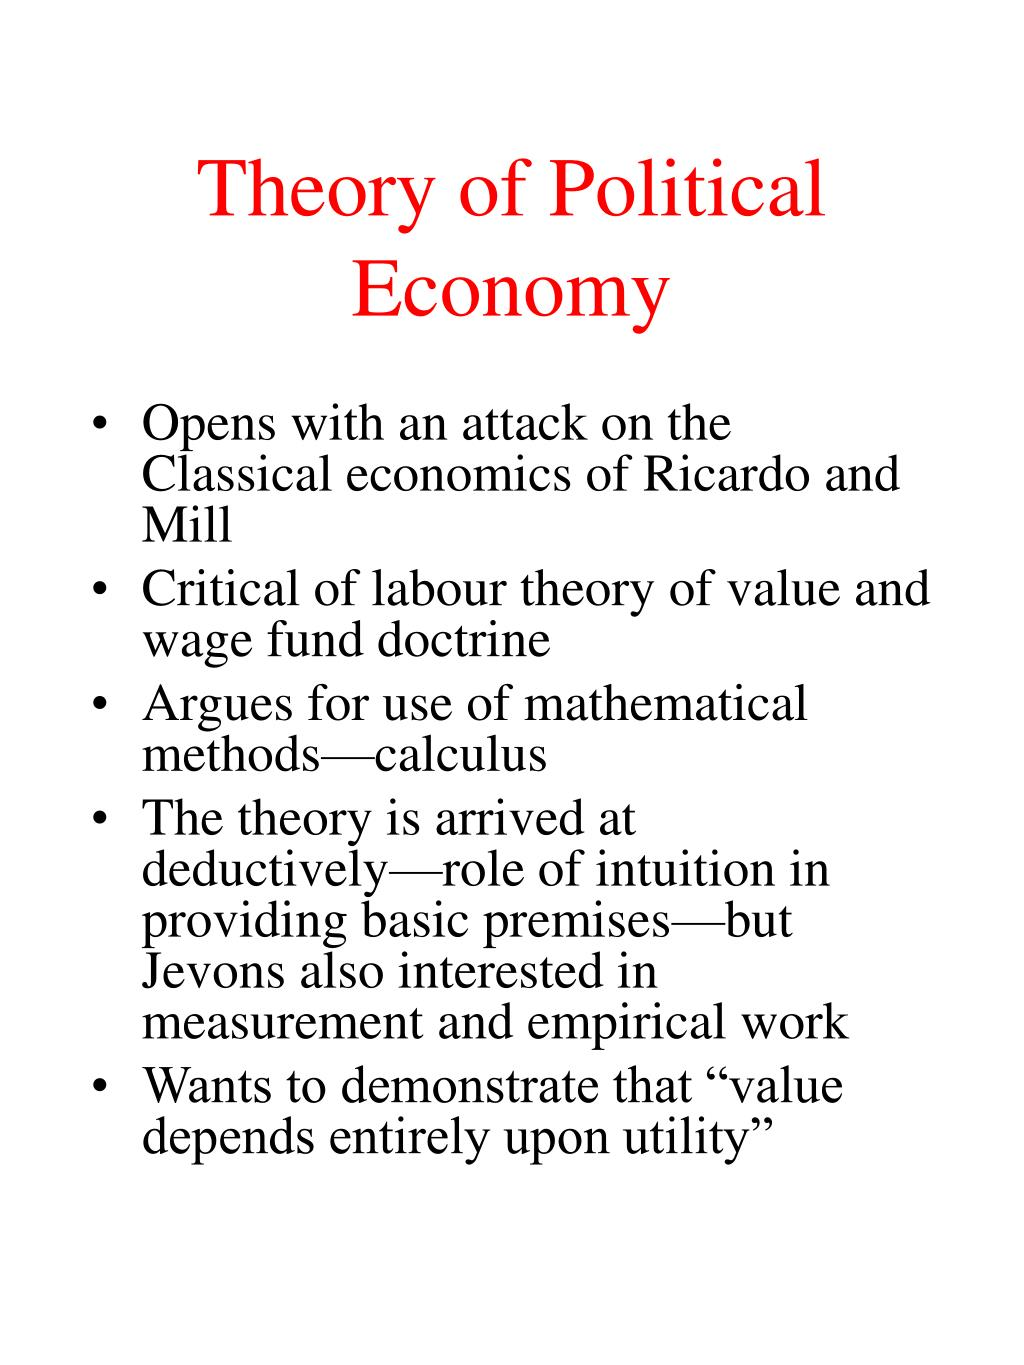 Theory of Political Economy